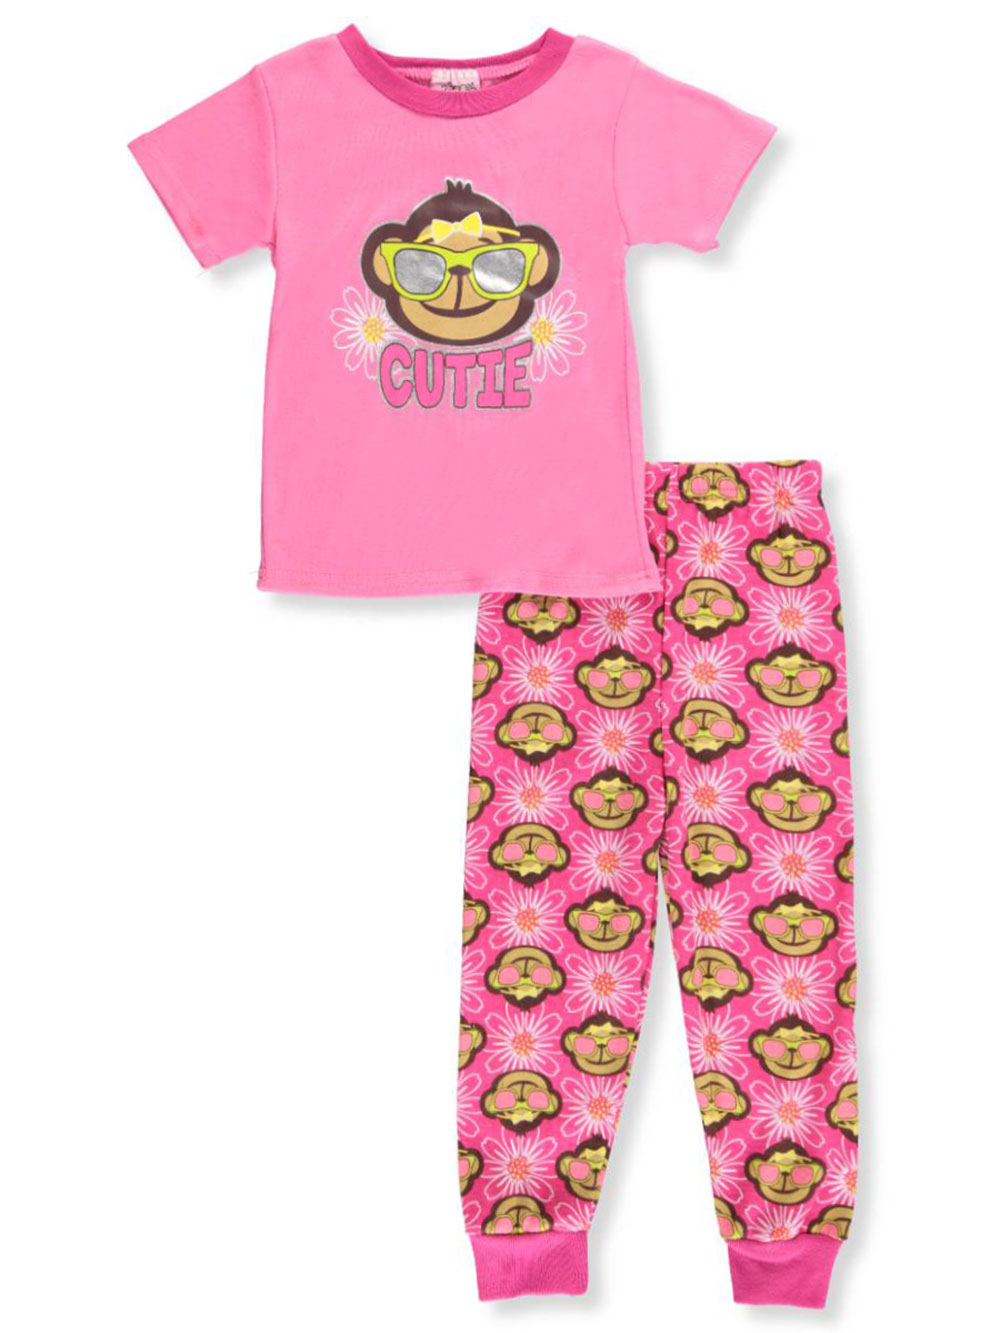 92d6cd3c203 Little Girls' Toddler 2-Piece Pajamas by 1000% Cute in Pink/multi from  Cookie's Kids